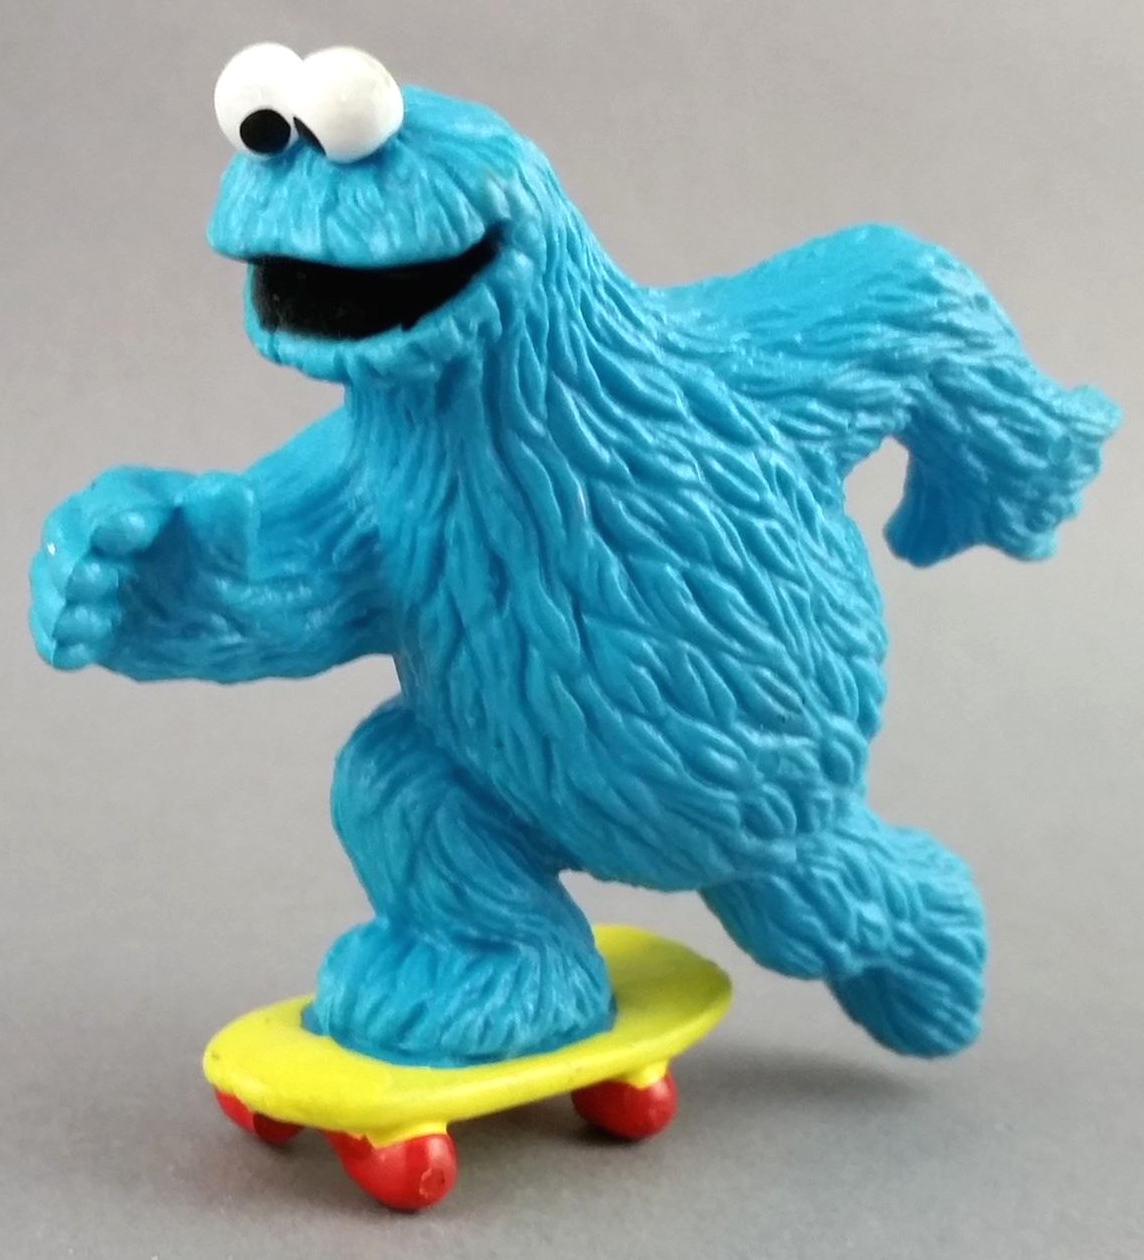 File:ApplauseCookieSkateboard.jpg